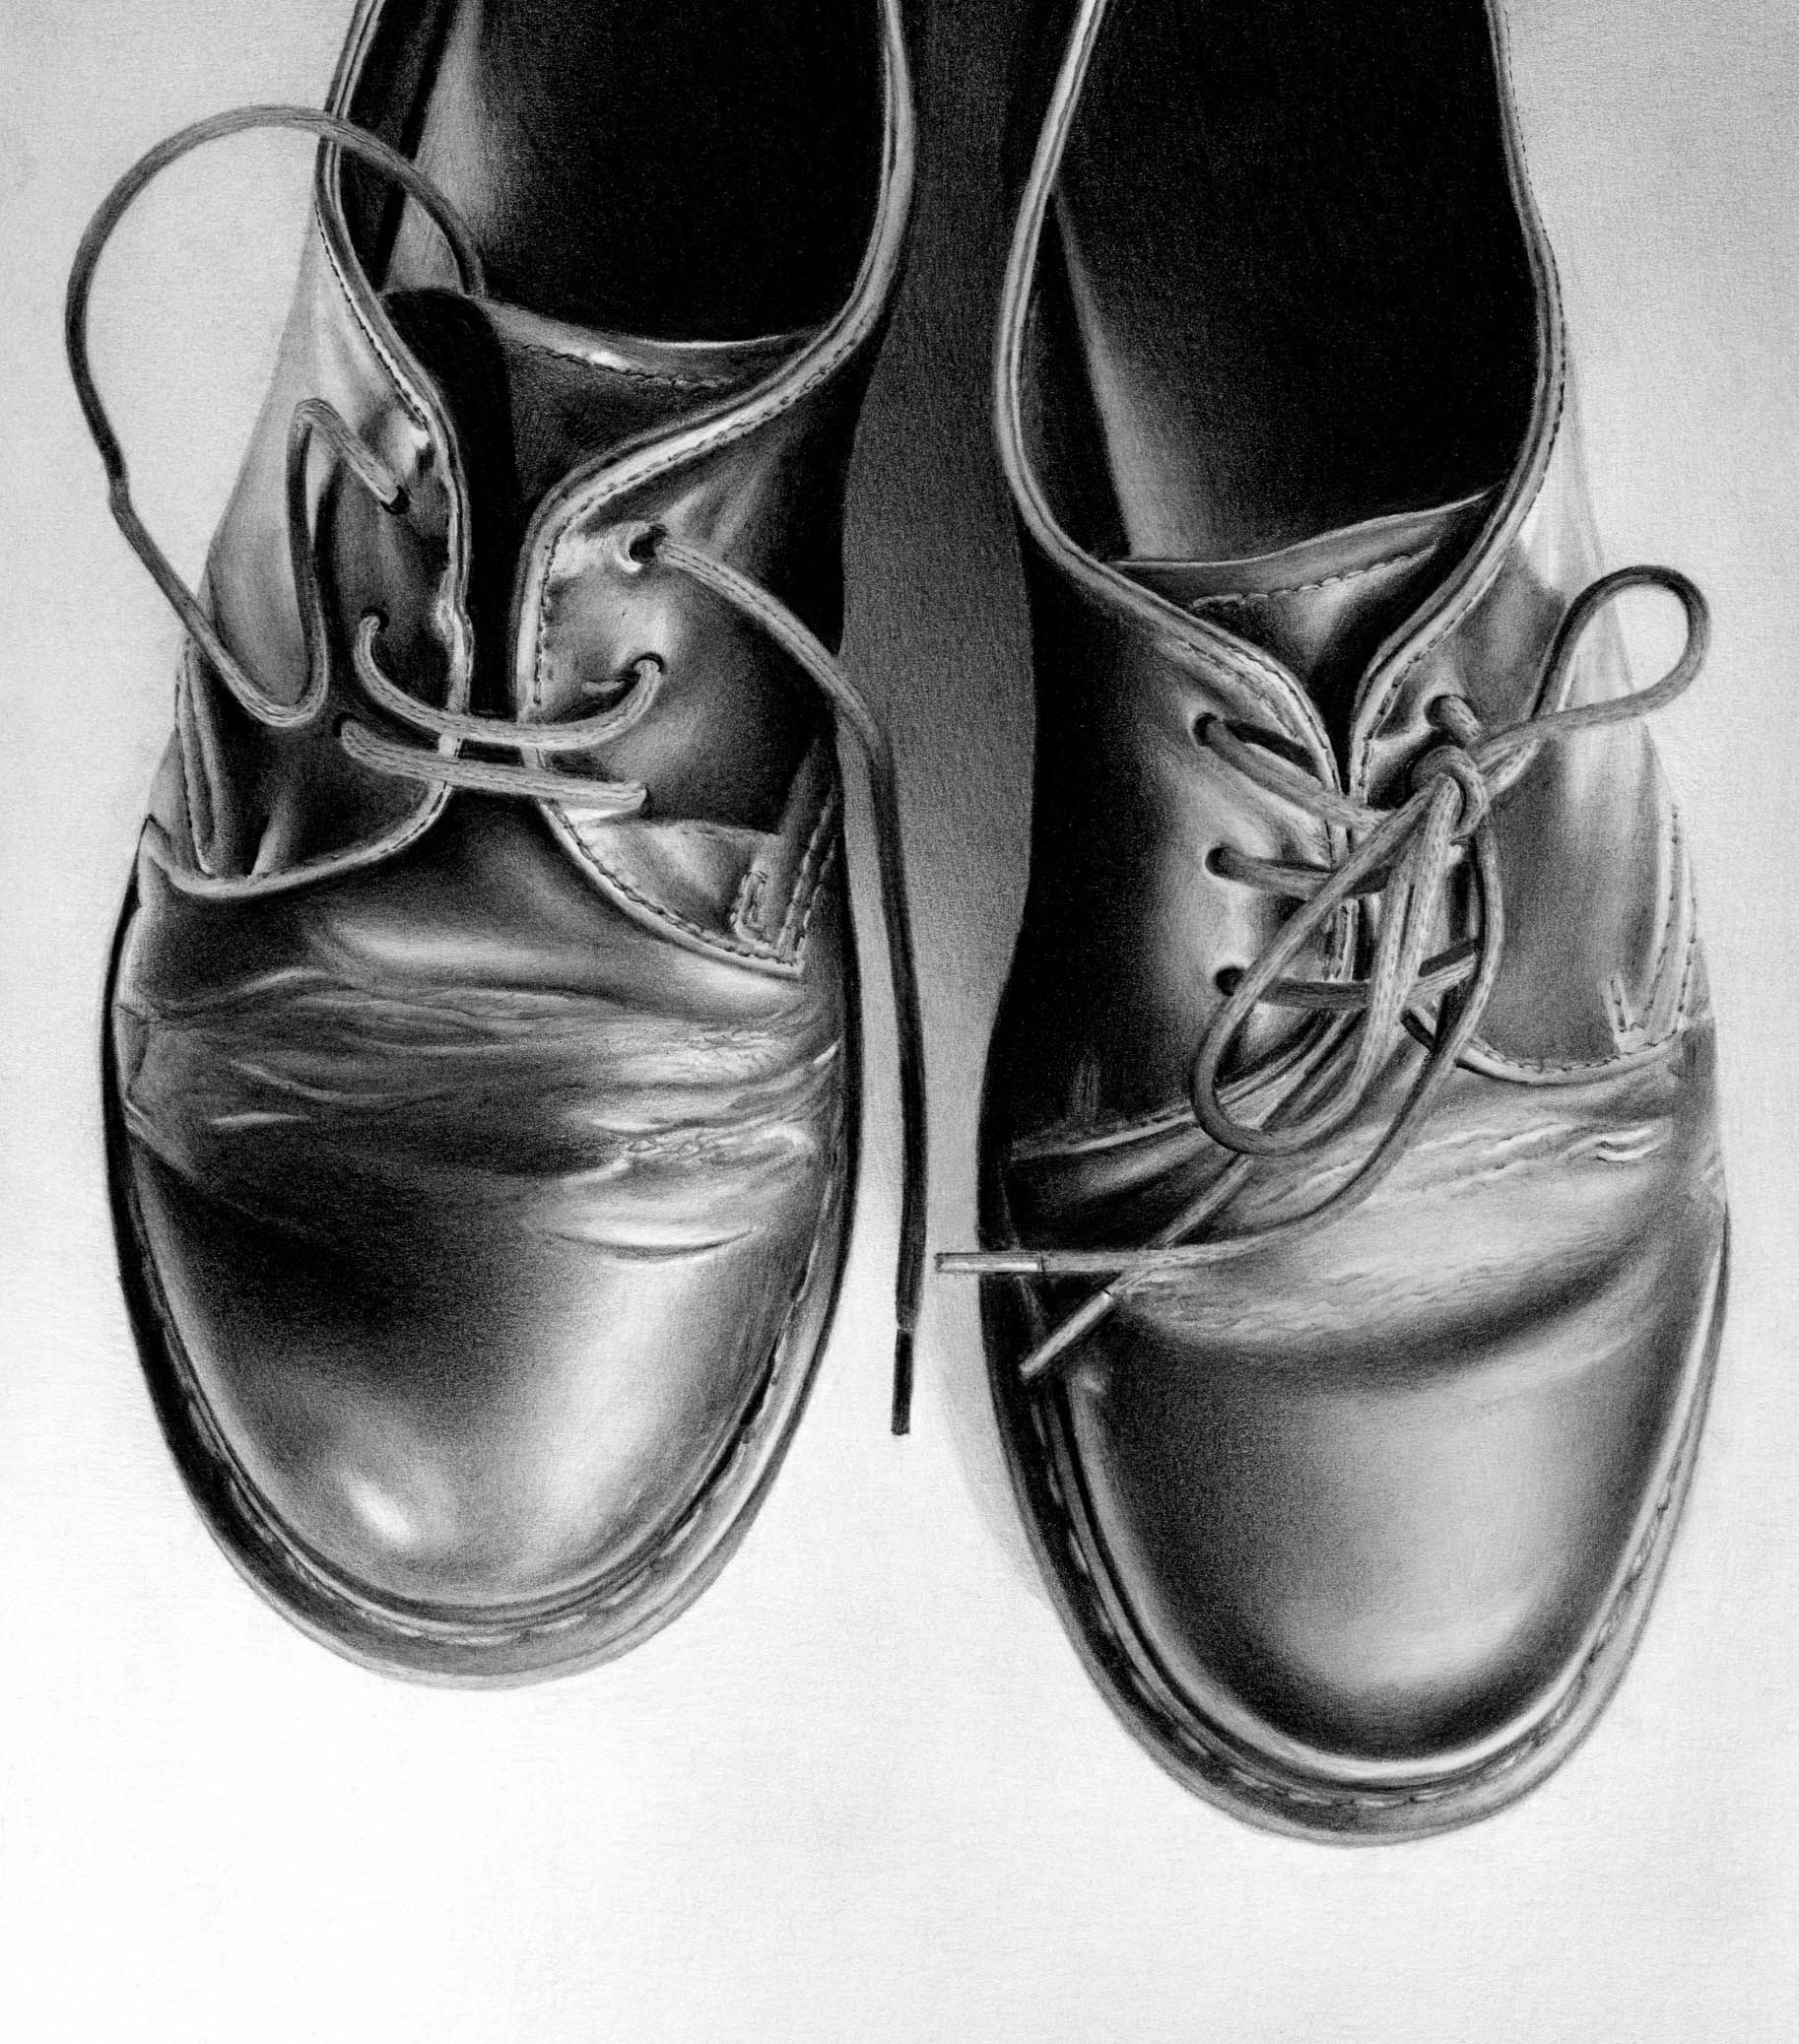 Doc martens by cath riley dark drawings realistic pencil drawings charcoal drawings charcoal